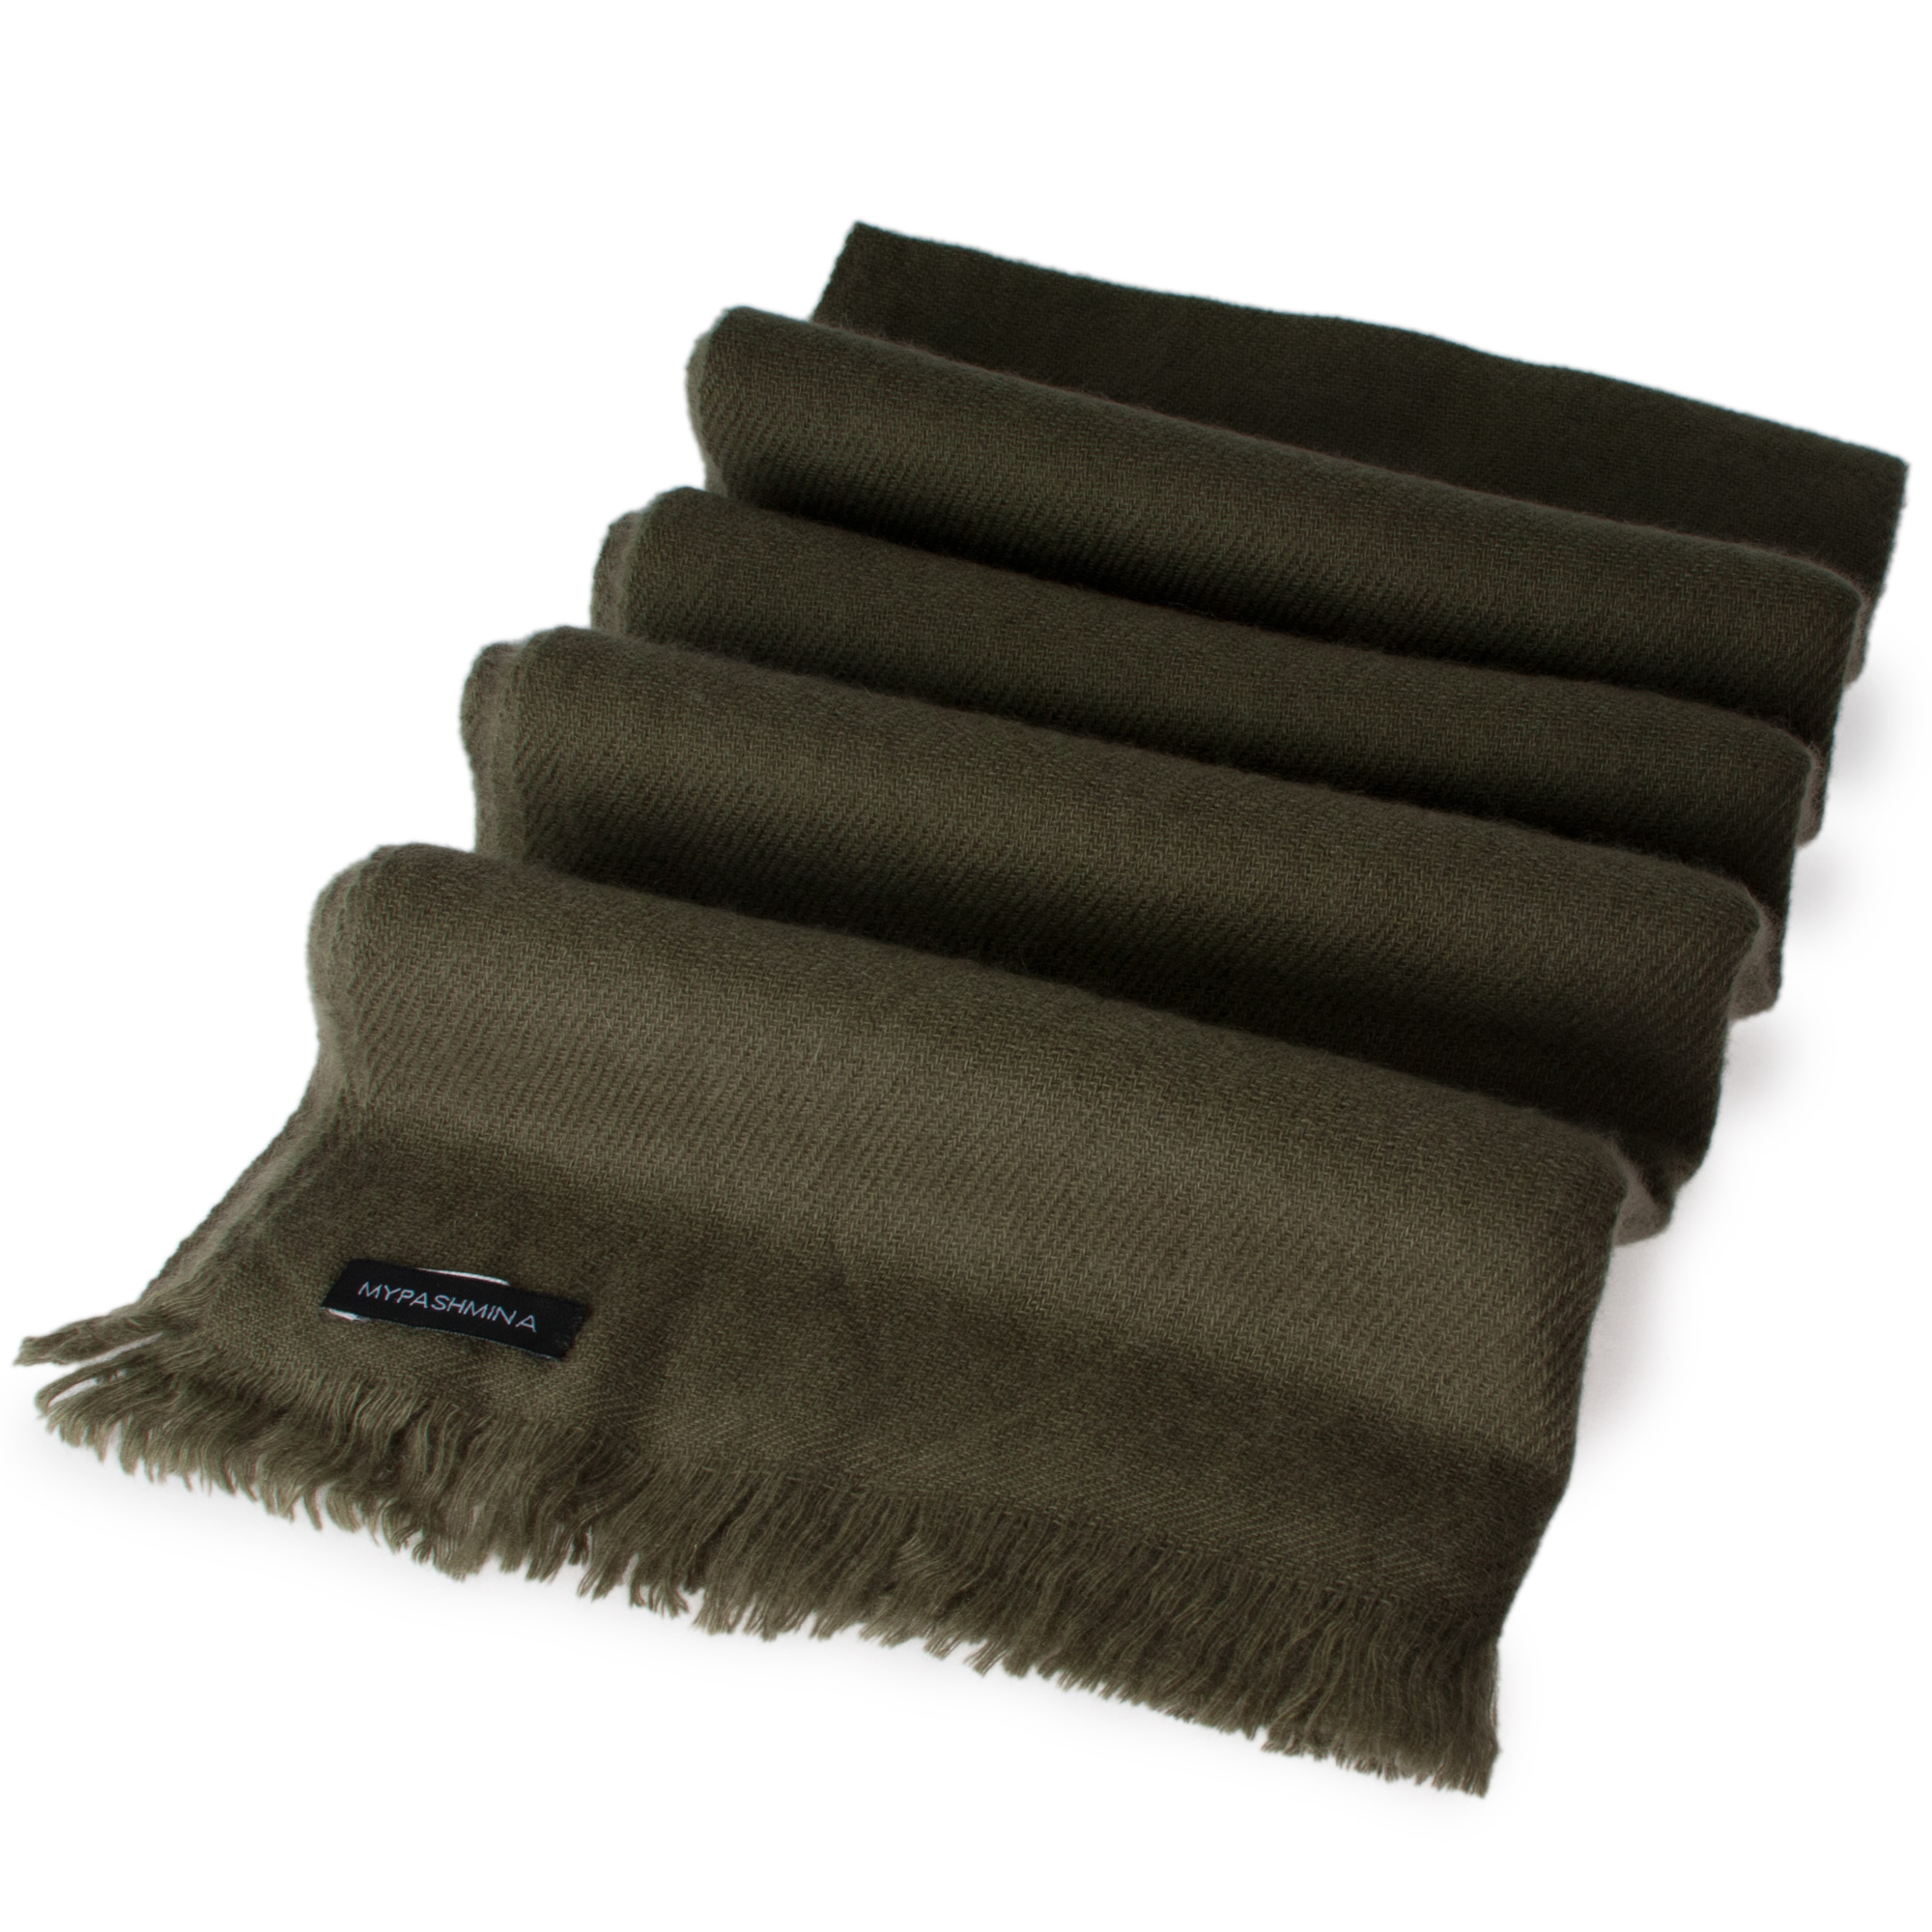 Open Fringe Pashmina Scarf - 45x200cm - 100% Cashmere - Grape Leaf